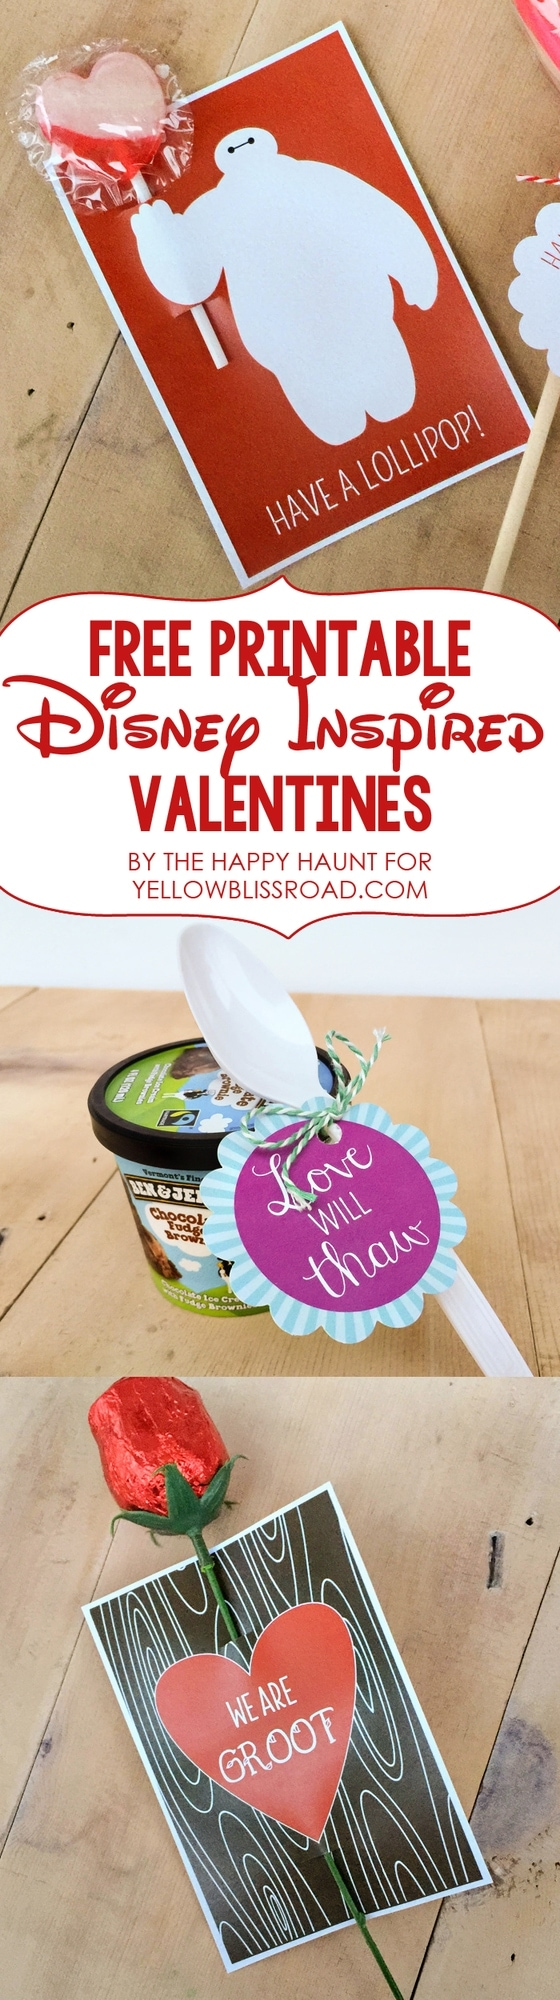 Free Printable Disney Inspired Valentines